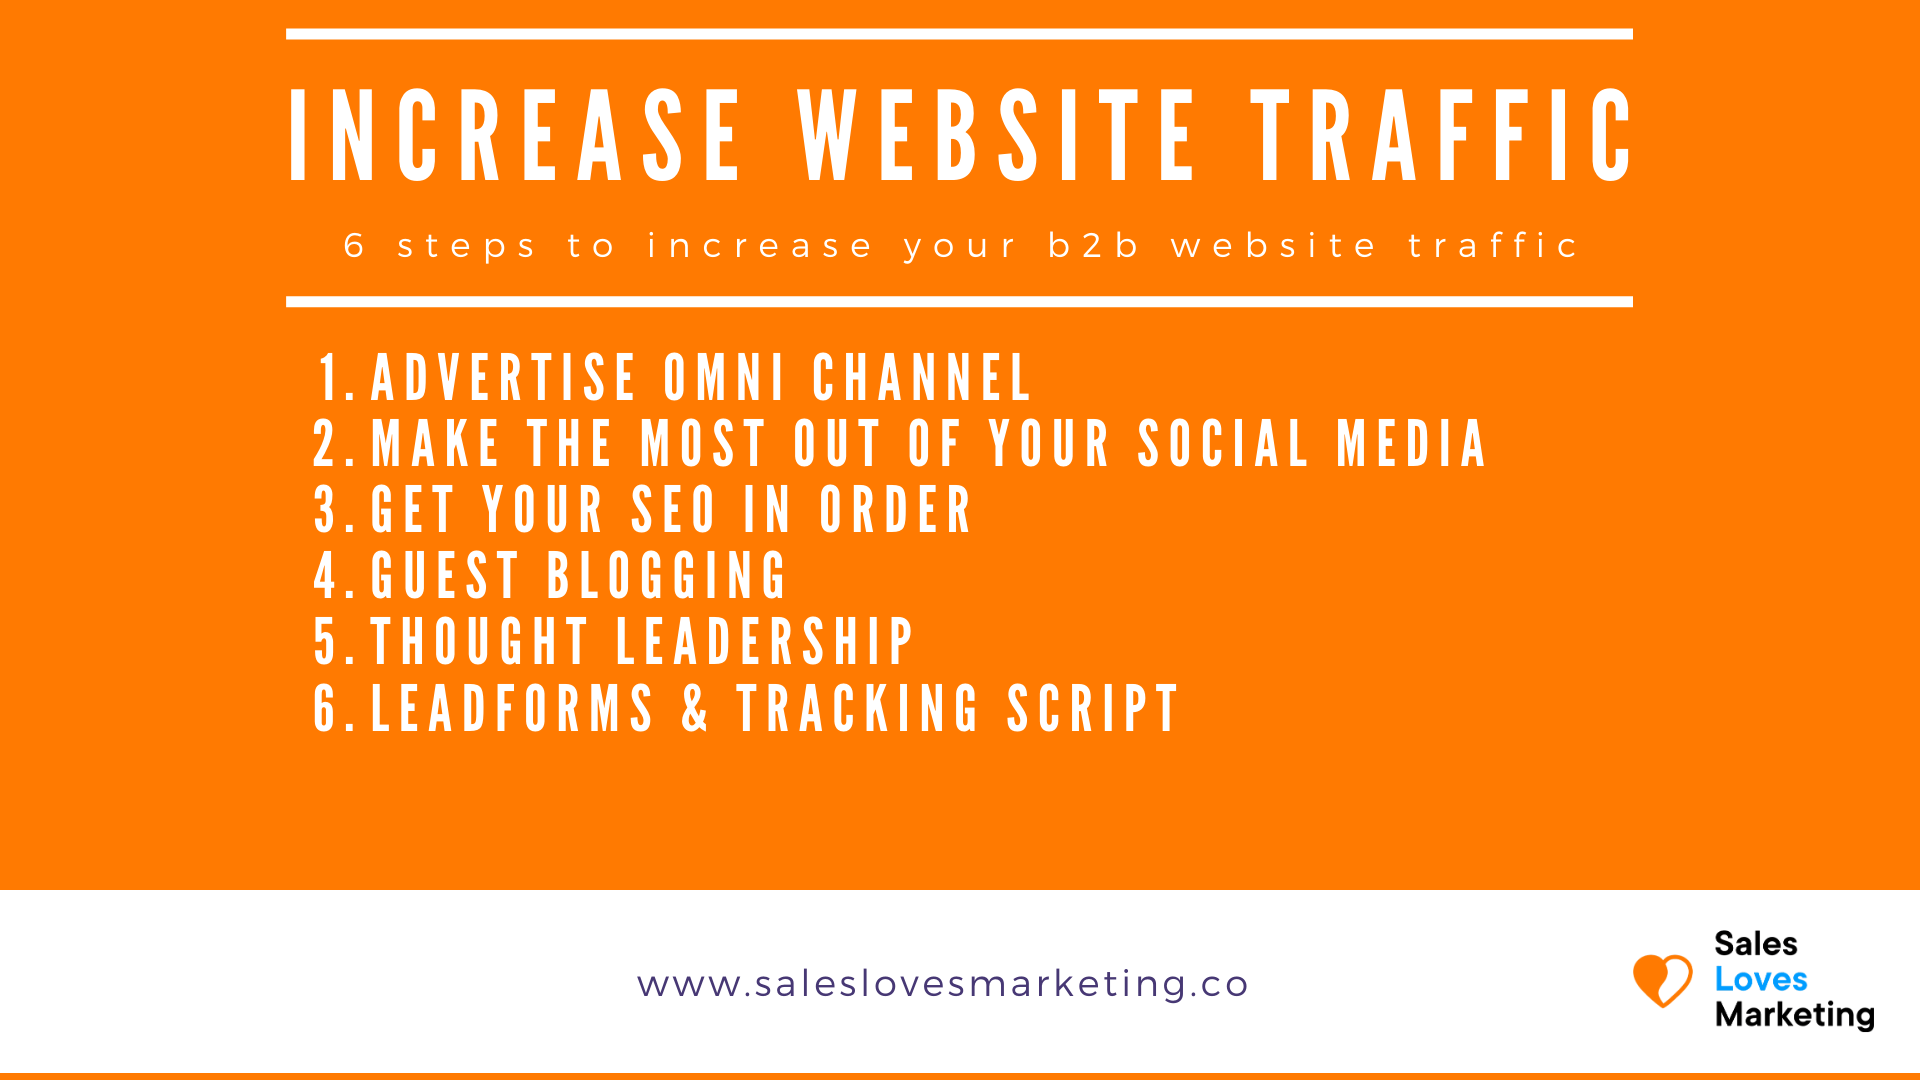 6 ways to increase your website traffic to grow your business